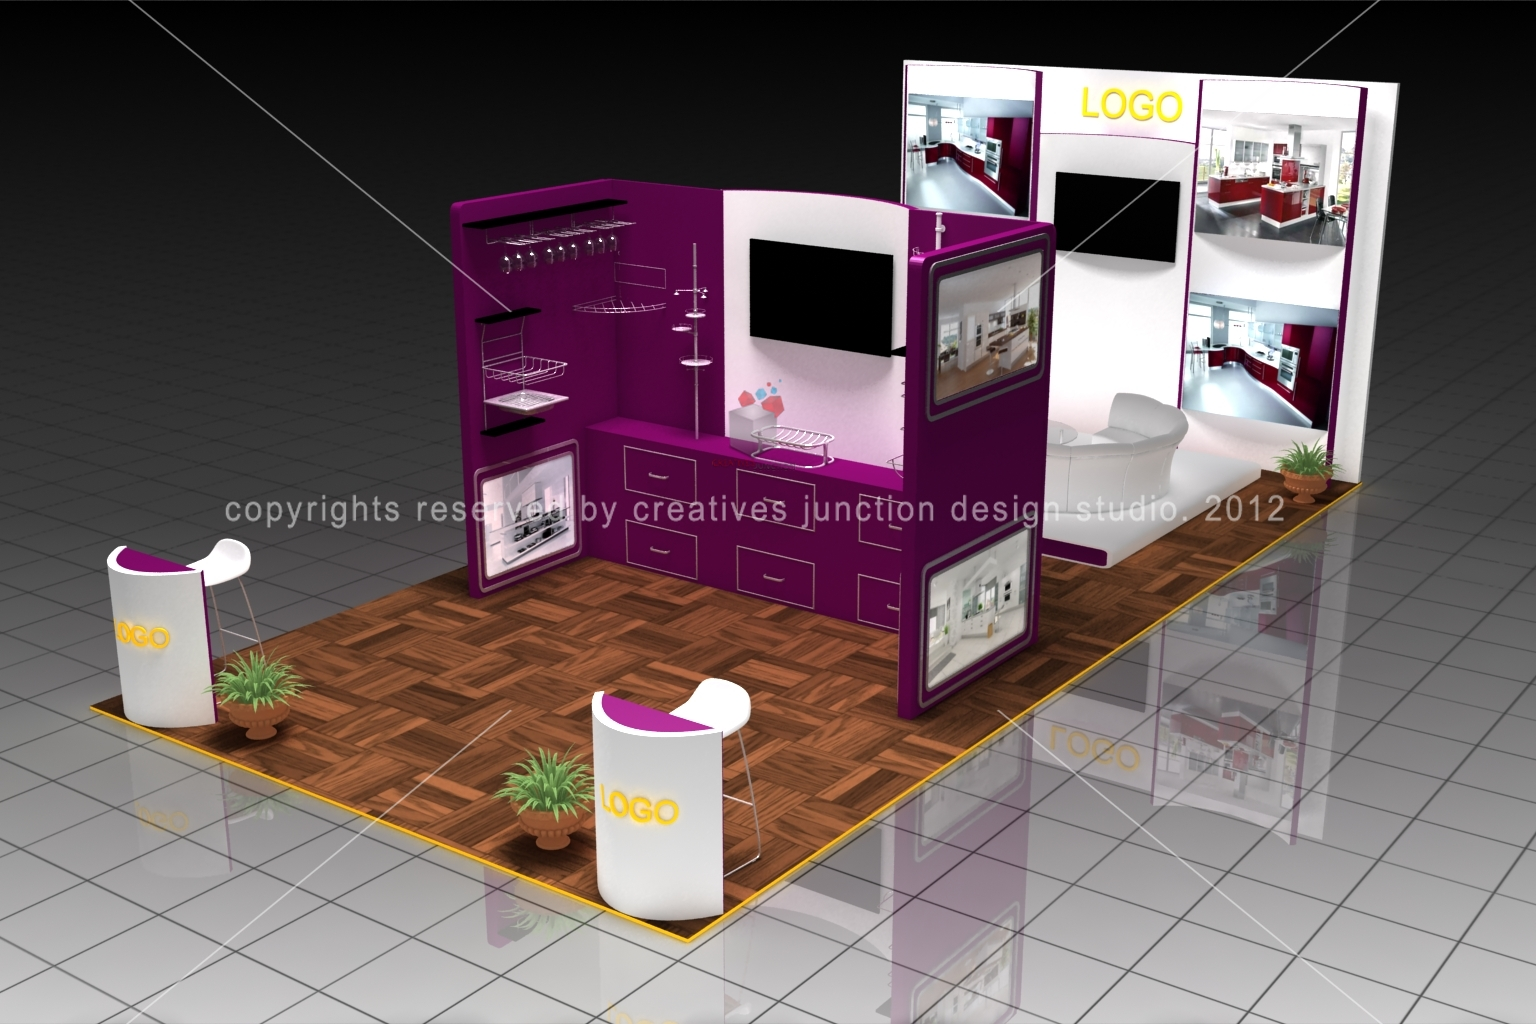 Exhibition Stand Design Decor : Creatives junction design studio home decor exhibition stand